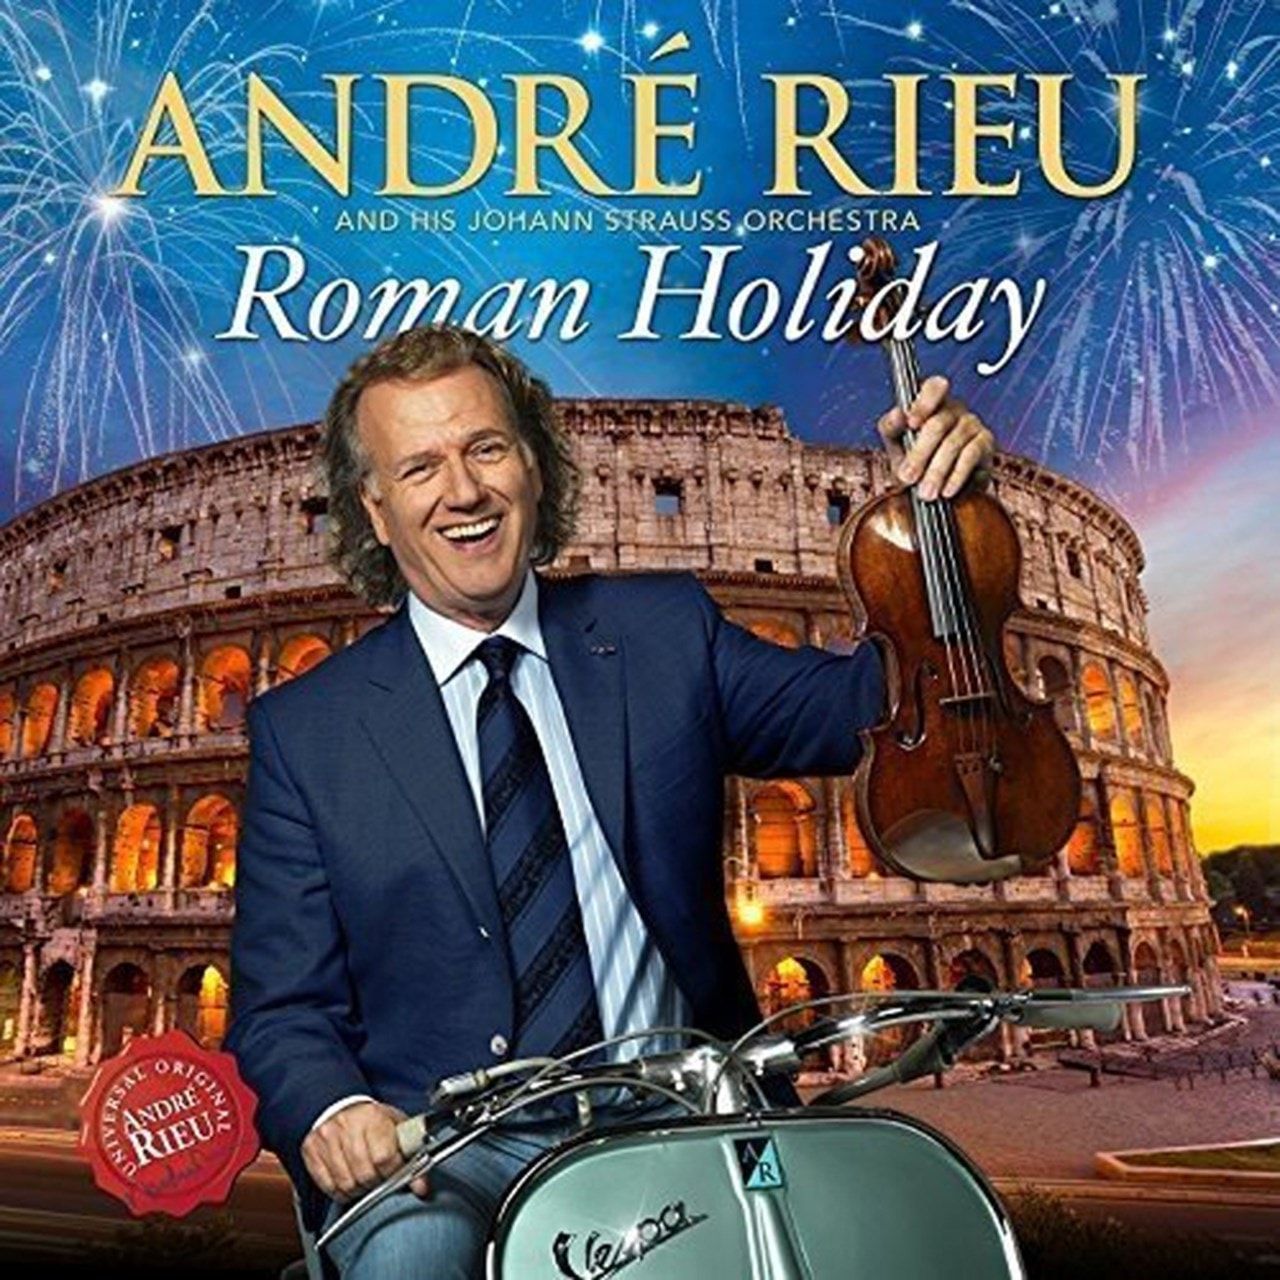 Andre Rieu and His Johann Strauss Orchestra: Roman Holiday - 1